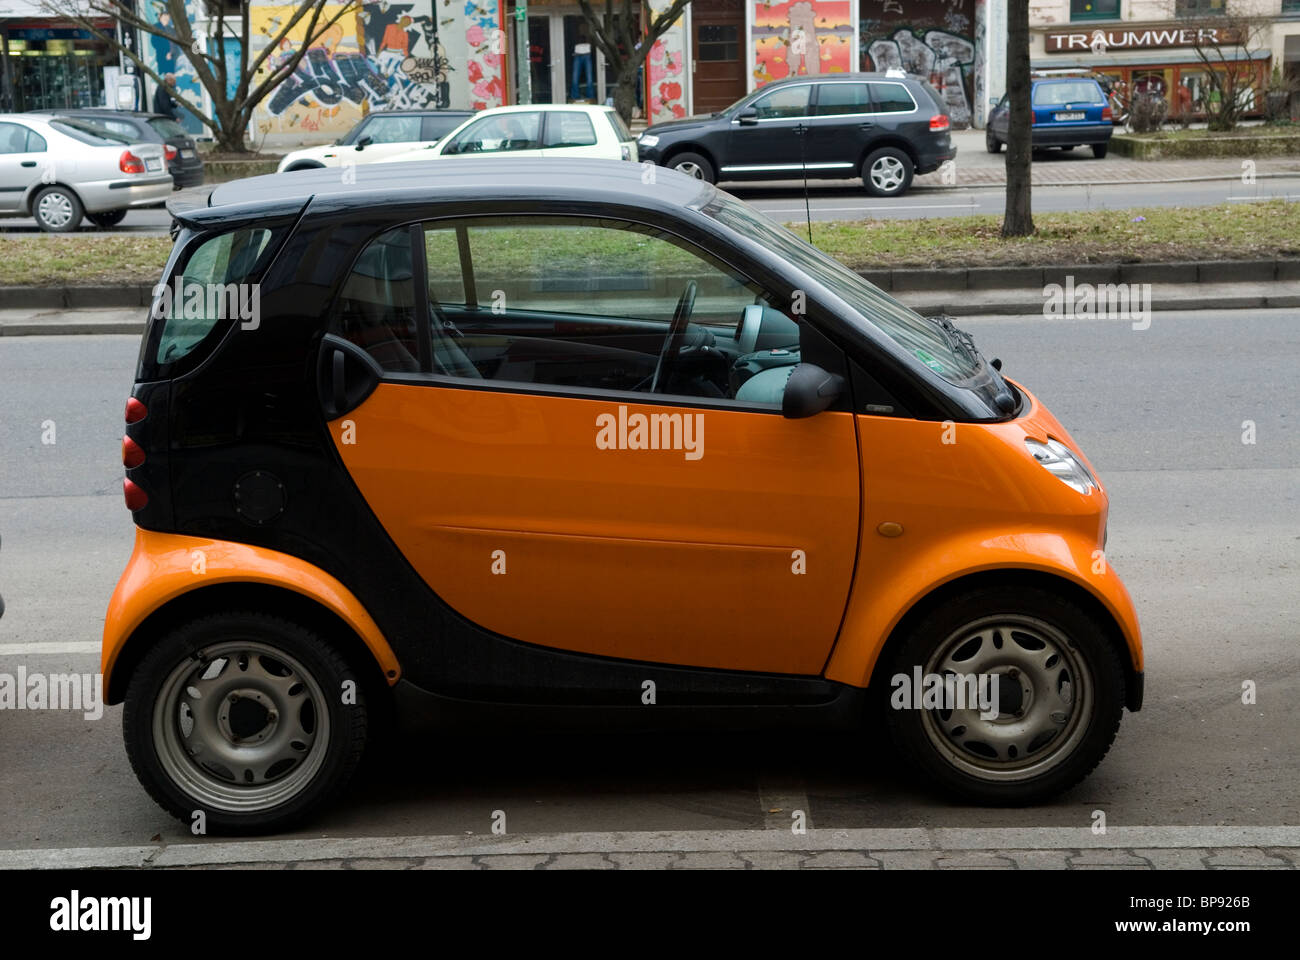 Electric Smart Cars Stock Photos & Electric Smart Cars Stock Images ...